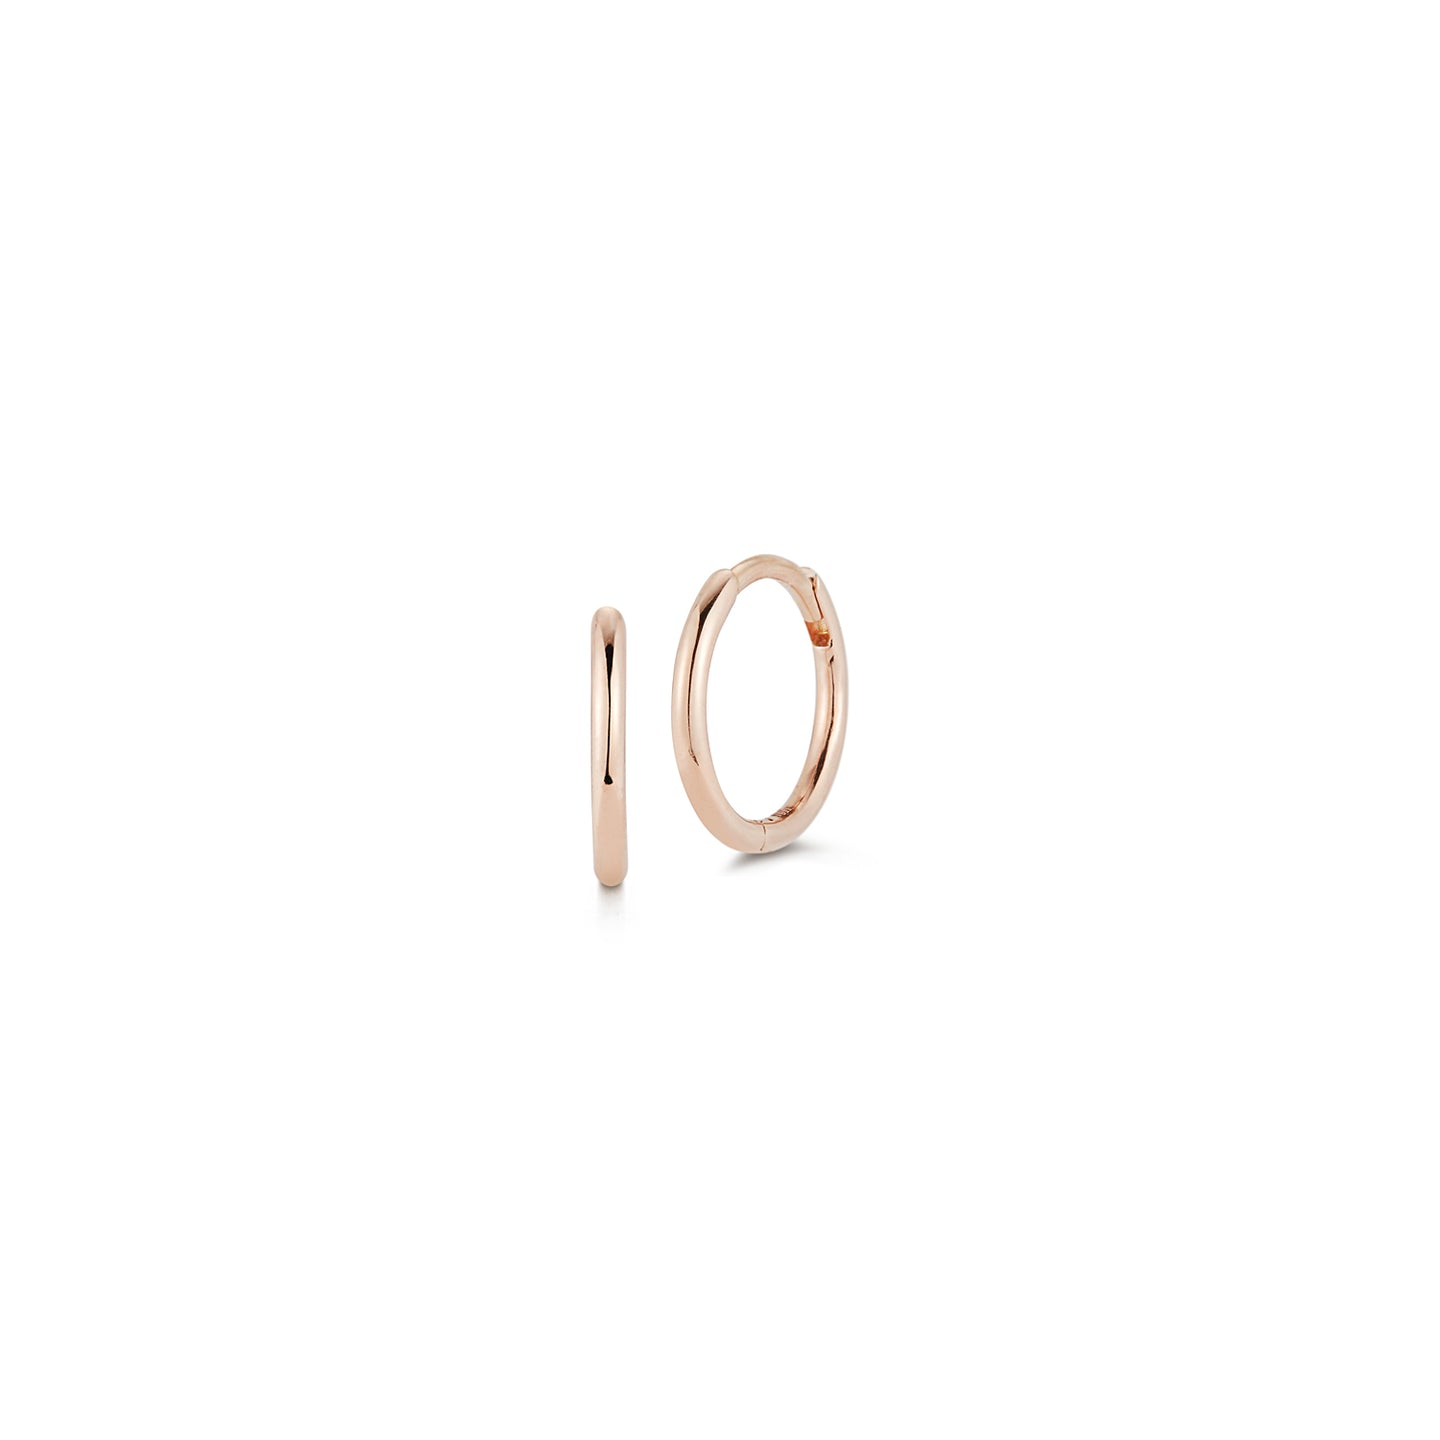 DORA 18K ROSE GOLD HUGGIES